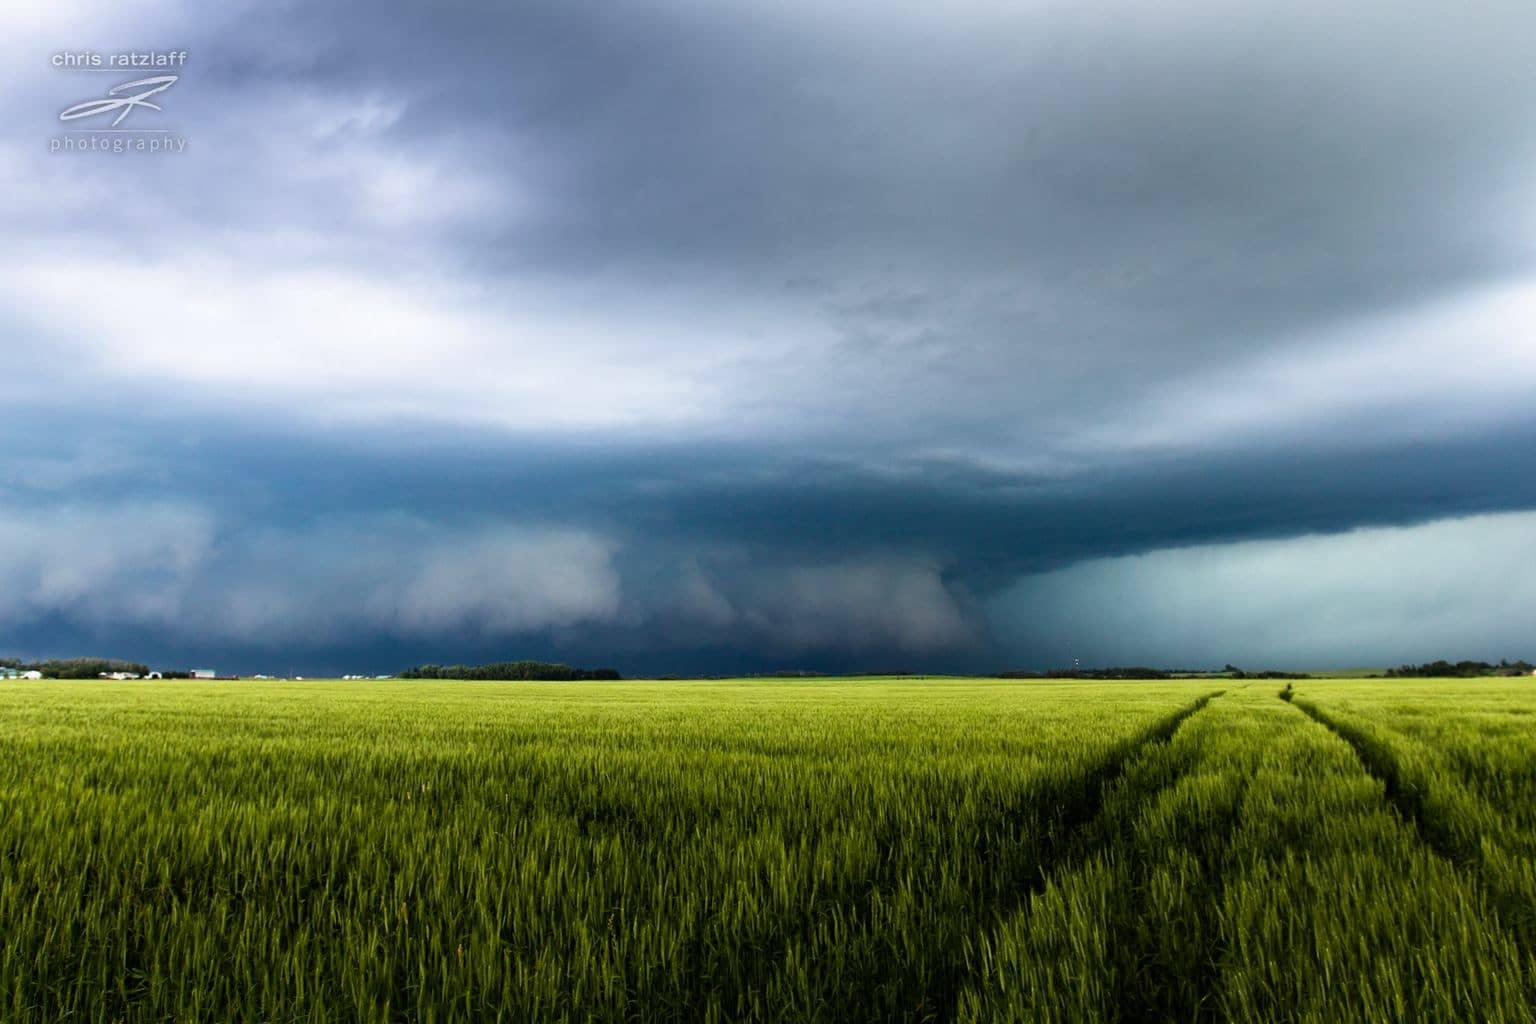 Here's a ground-scraper from a tornado-warned storm in central Alberta on July 19, 2014.